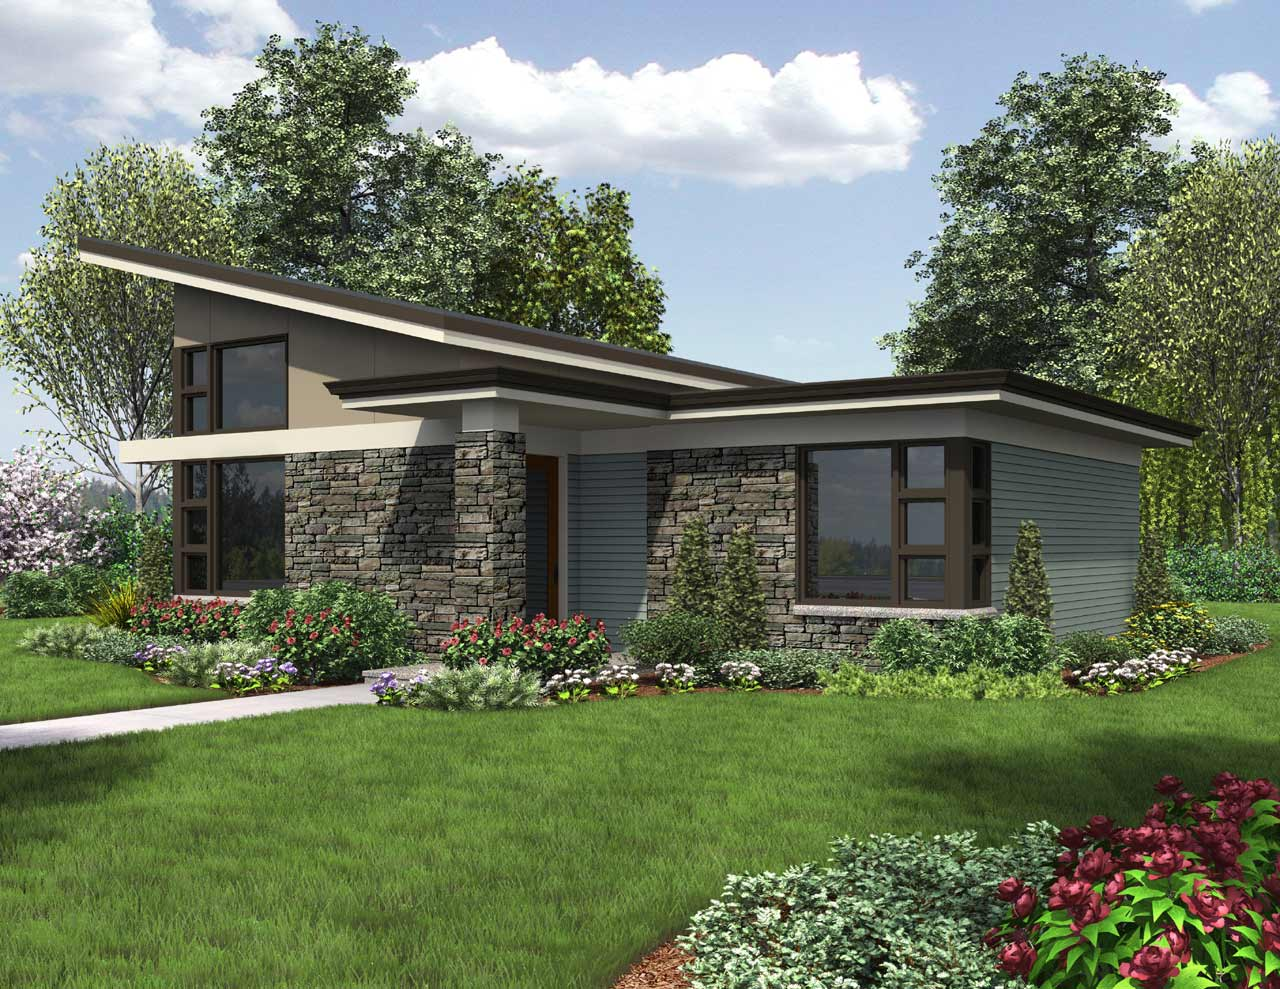 Contemporary Style House Plans Plan: 74-717